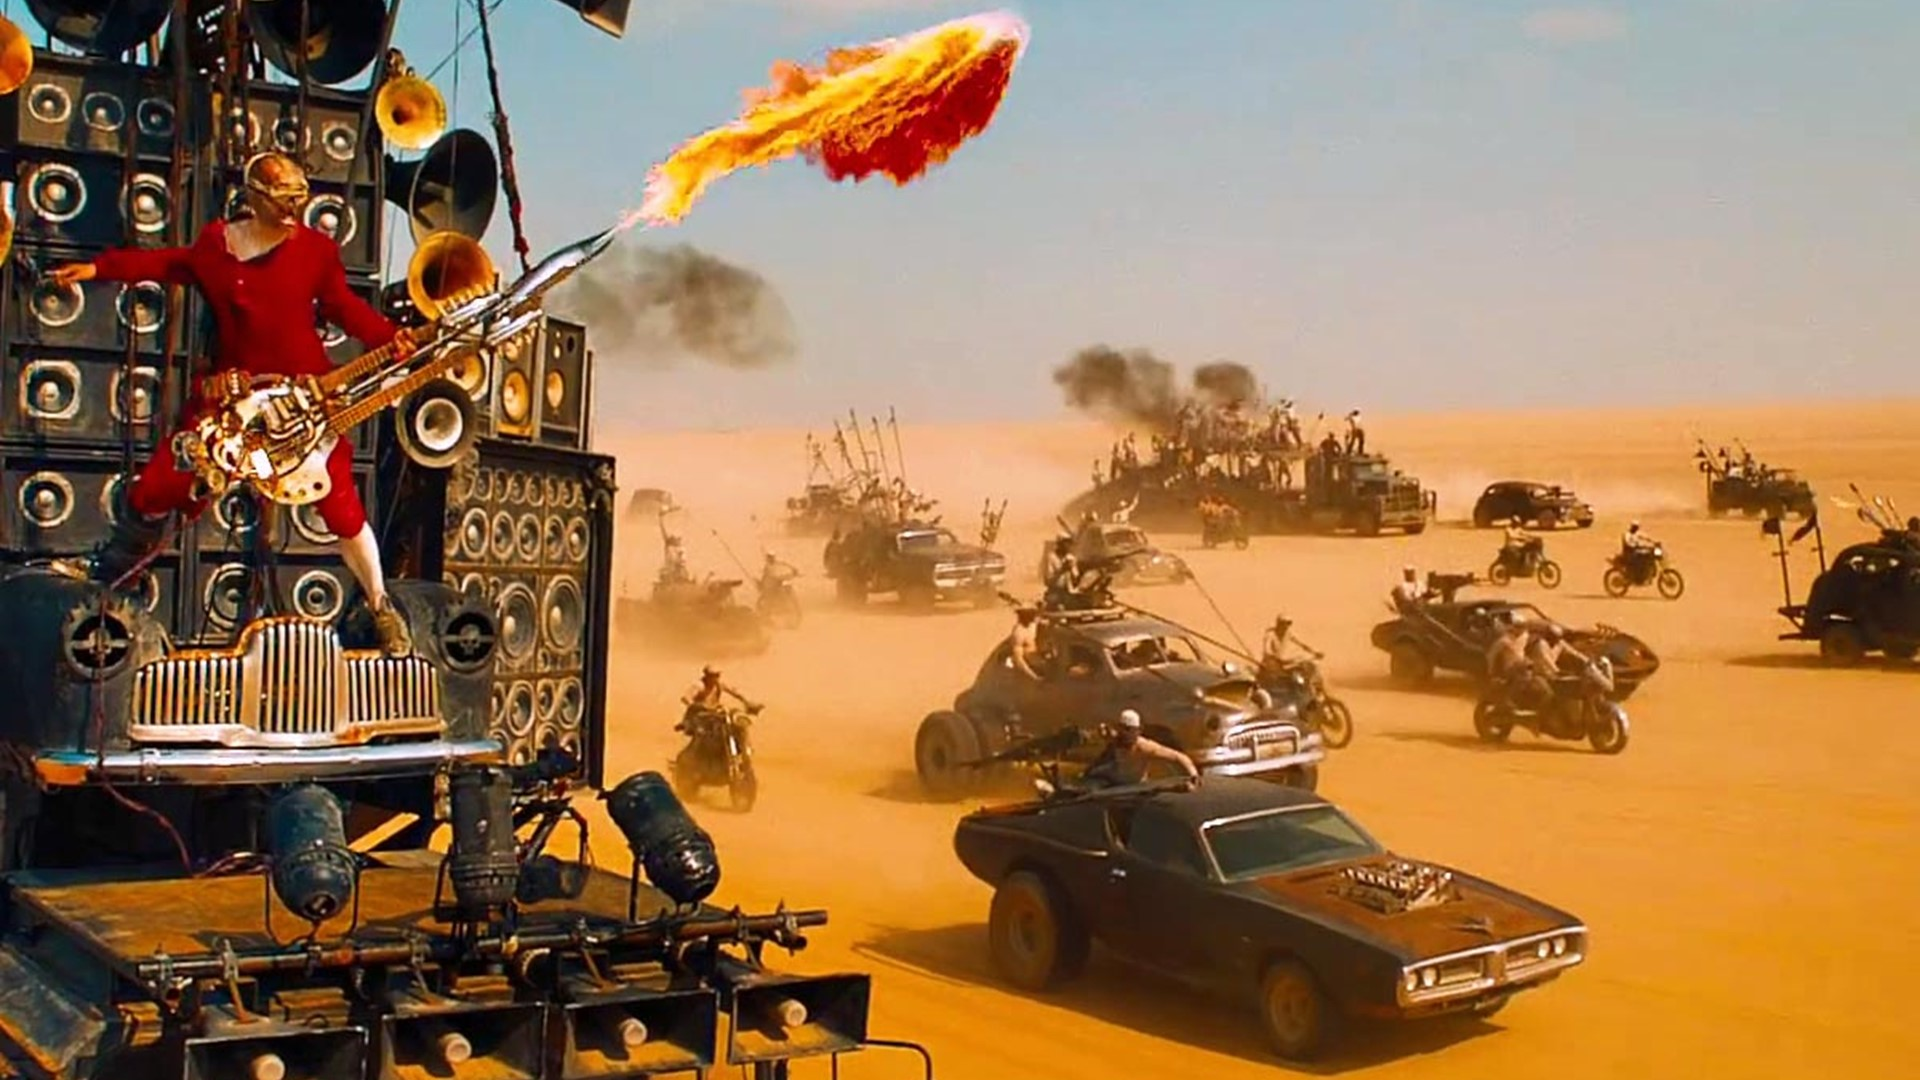 comPOSERS Episode 48 – Mad Max: Fury Road